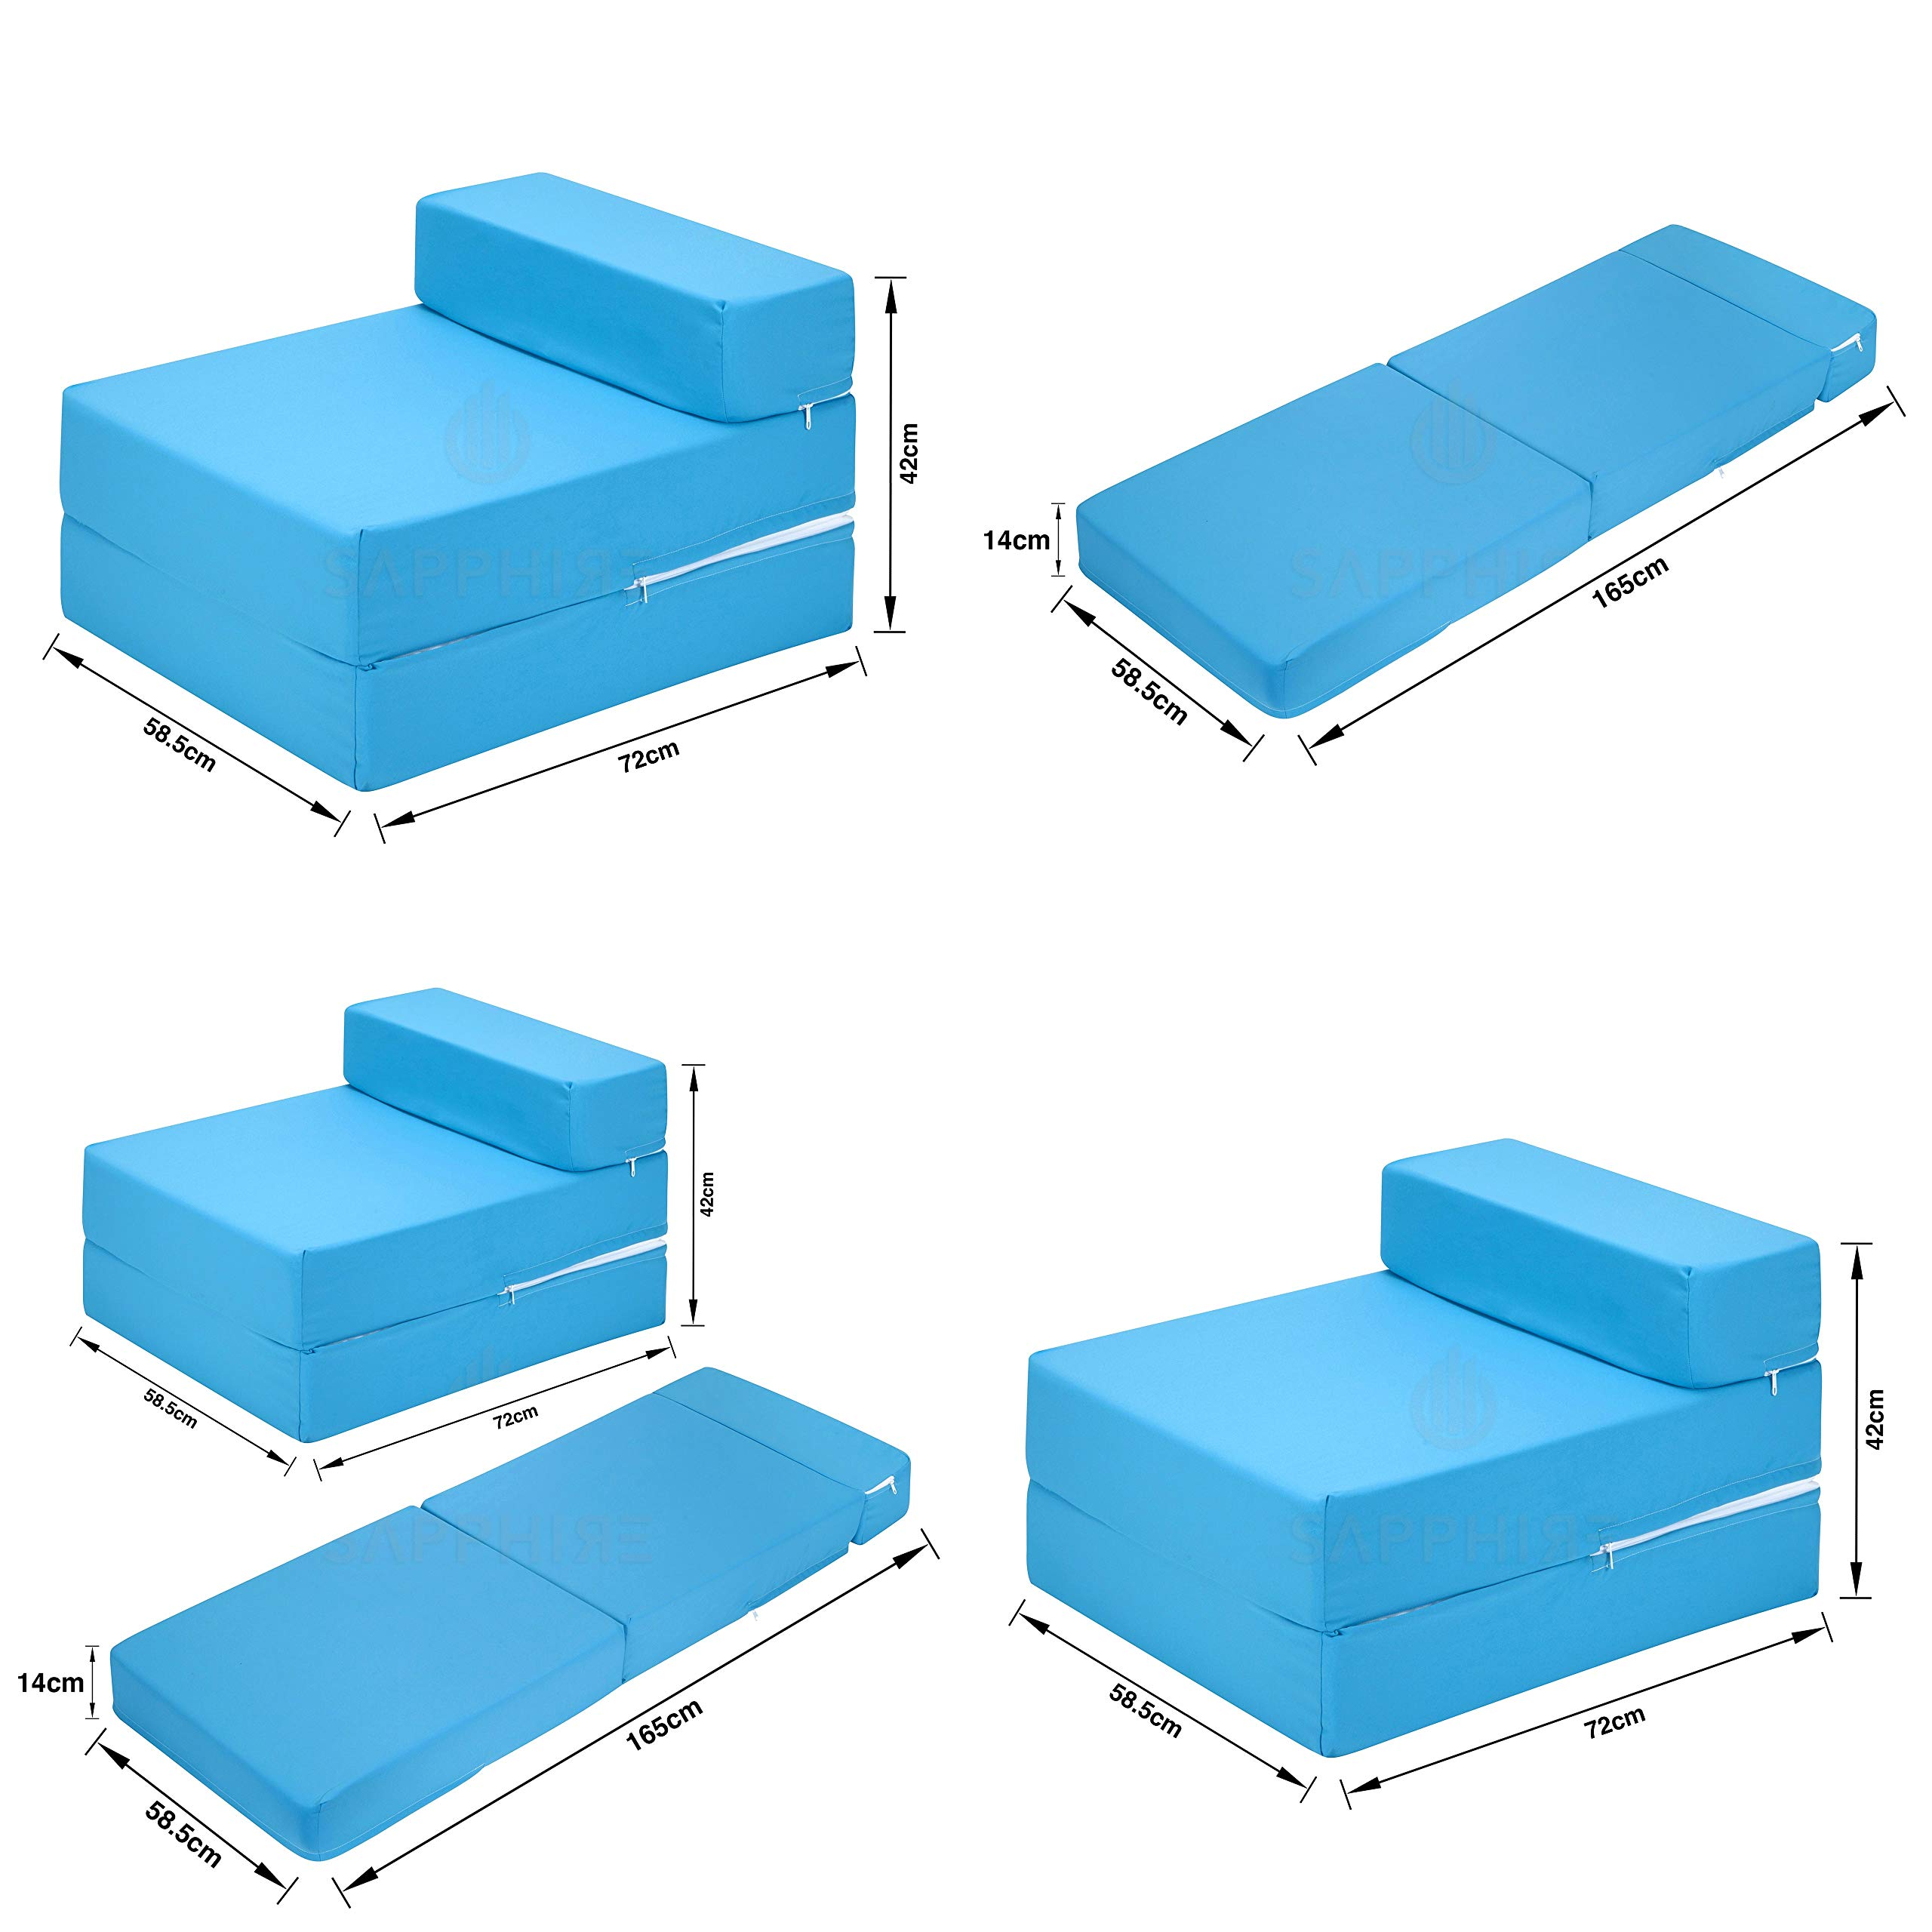 inspire Fold Out Single Guest Z Bed Chair Folding Mattress Sofa Bed Futon  Chair Bed - TURQUOISE